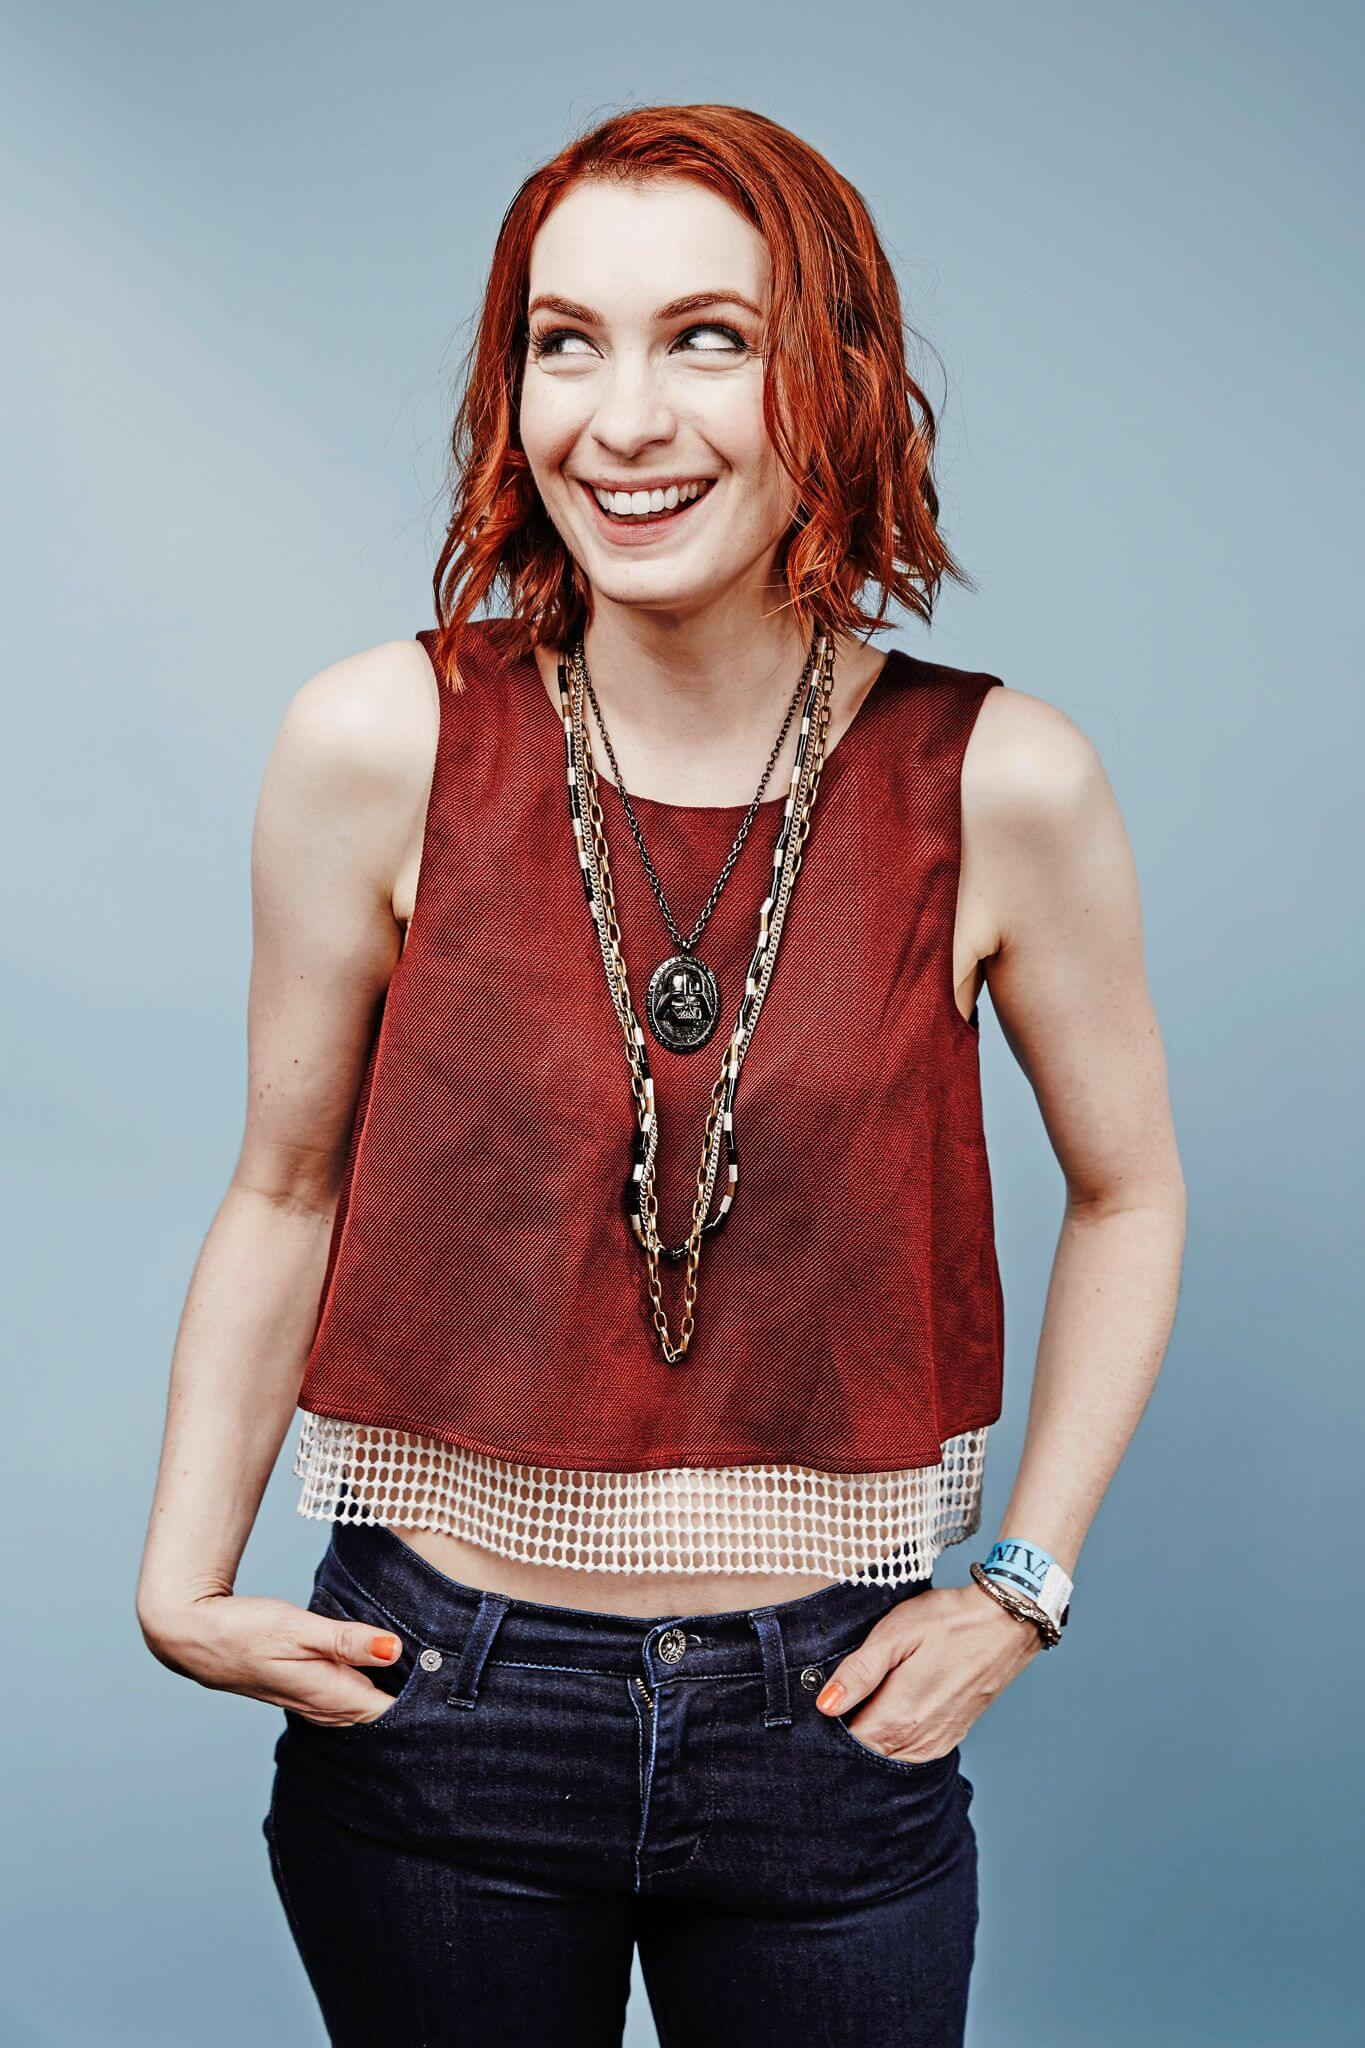 Felicia Day awesome pic